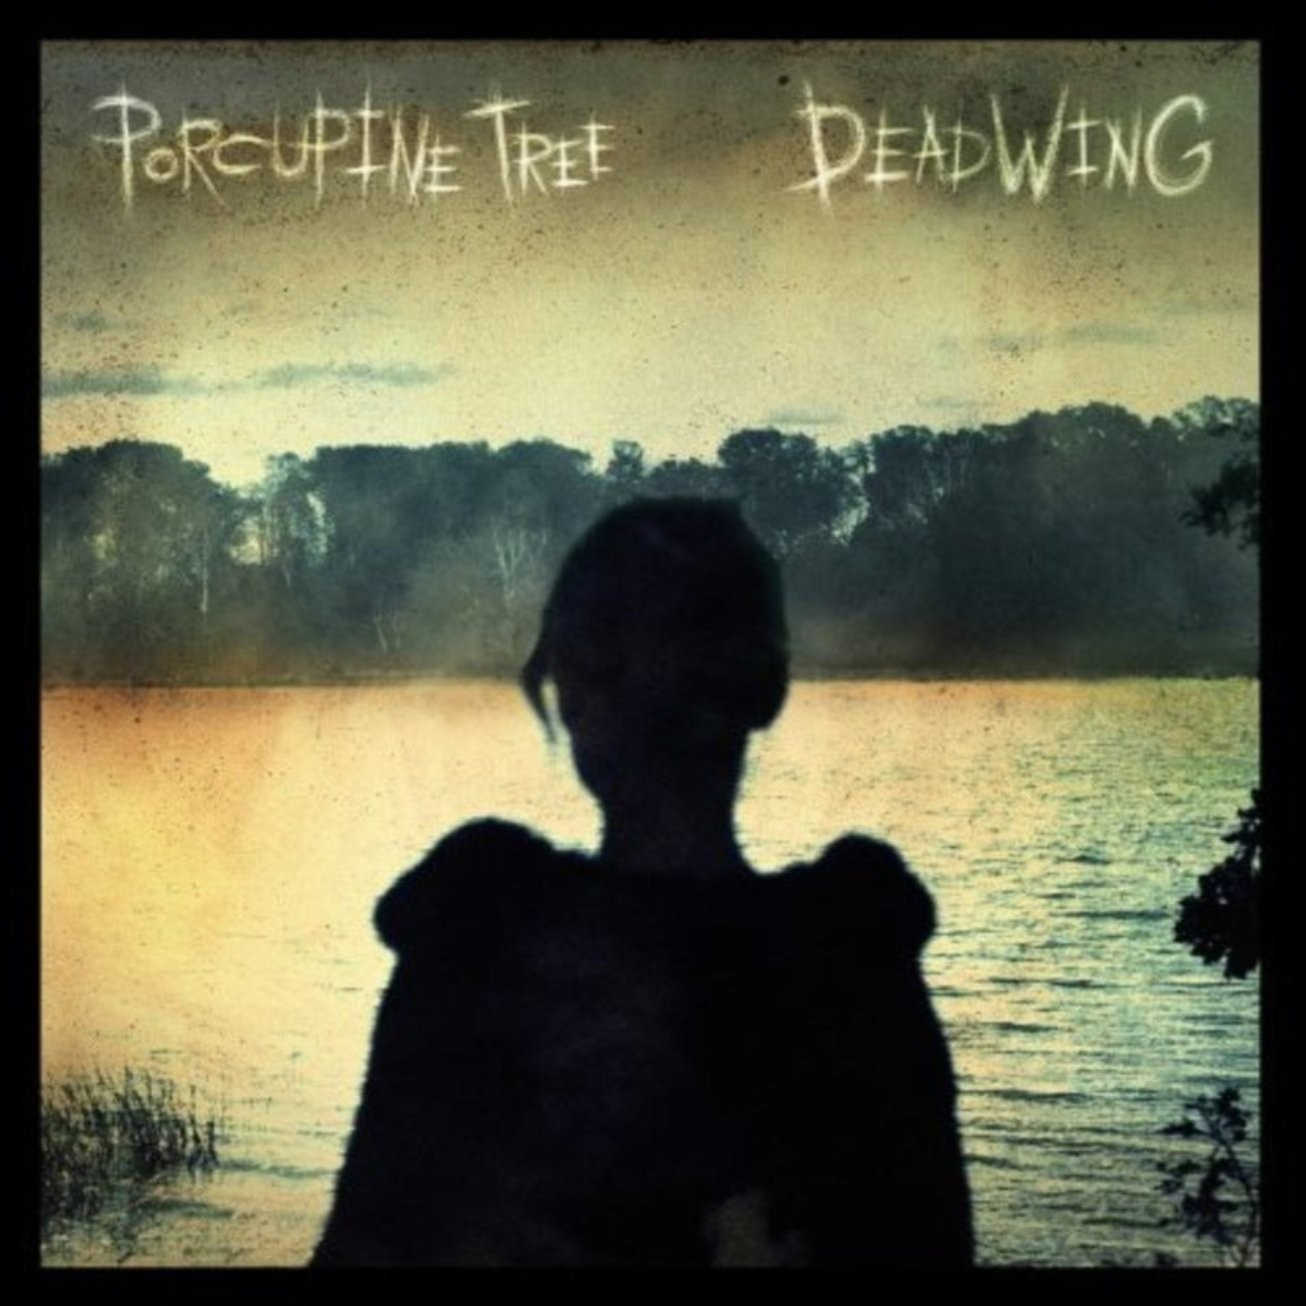 Porcupine Tree's Deadwing released 12 years ago